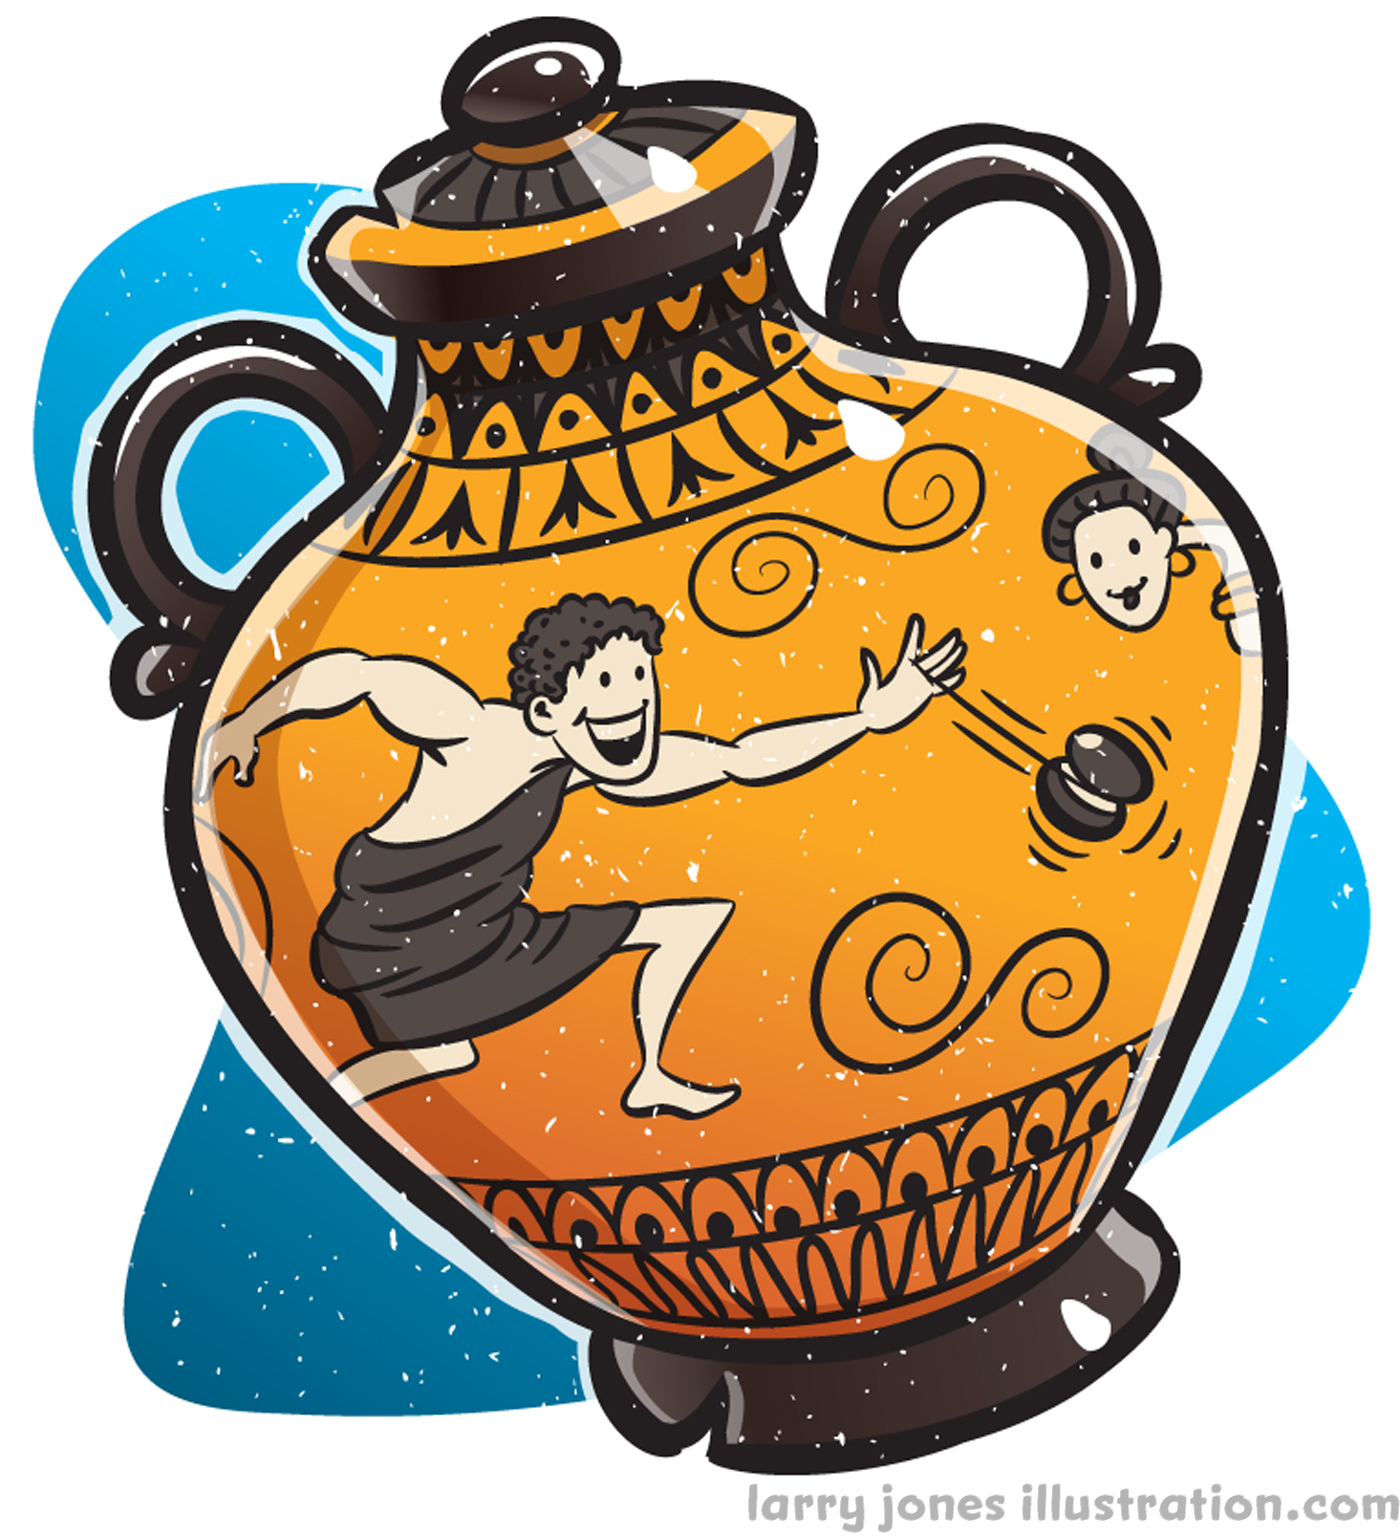 An ancient Greek vase was found with art depicting someone playing with a yo-yo.